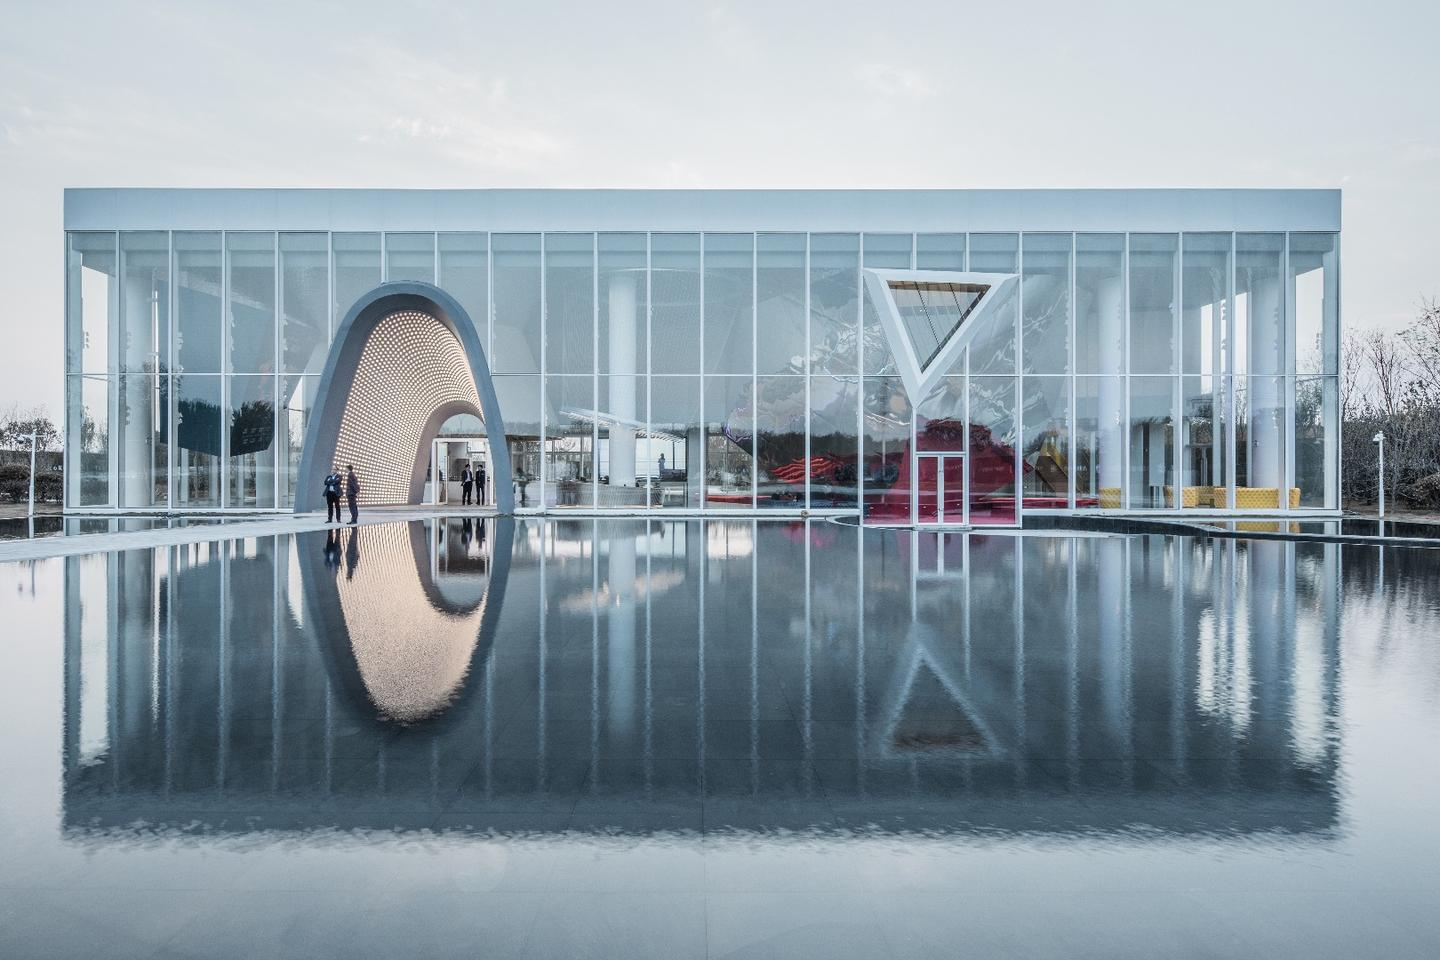 China's Courtyard No. 1, by AOE, is one of the projects shortlisted for the 2019 ABB LEAF Awards